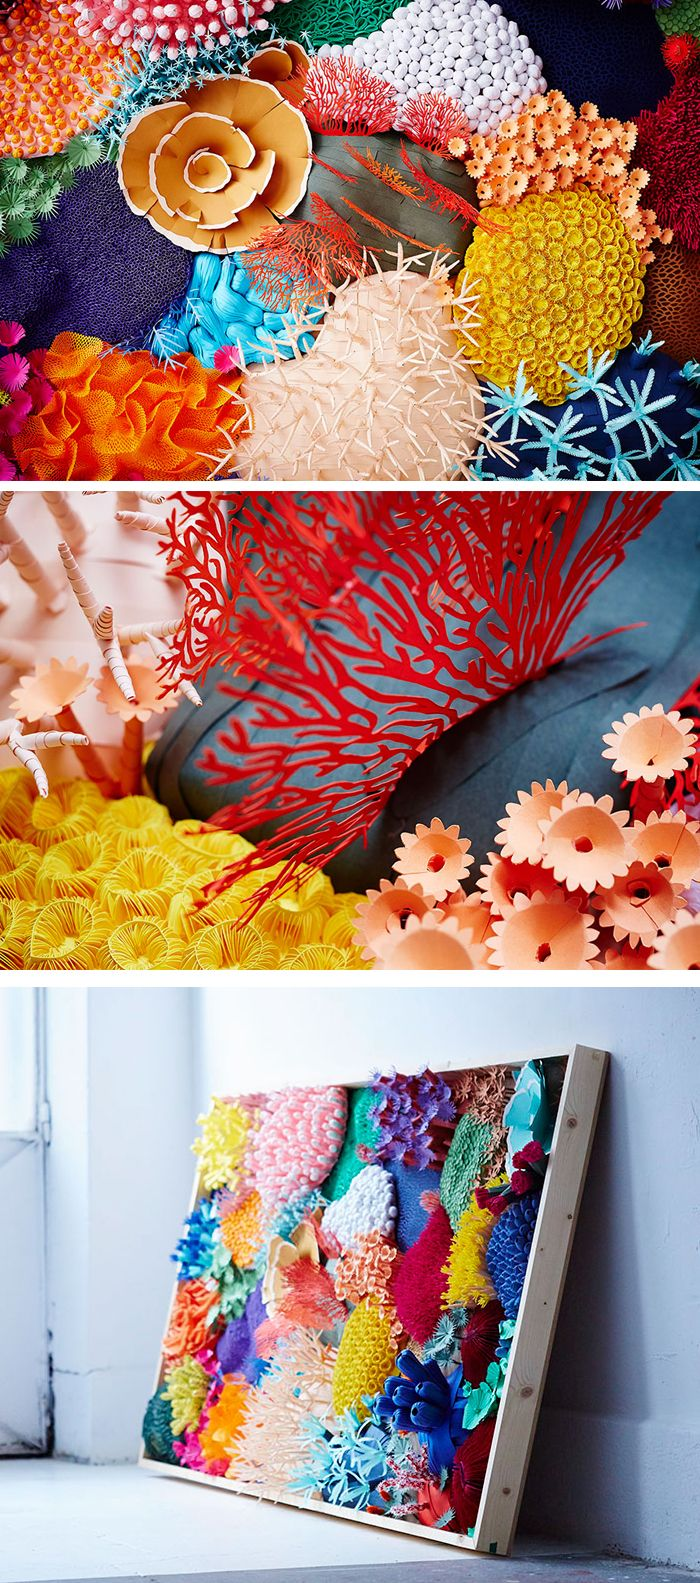 Reduce Paper Aid Sculpture is a Sensible Option to Illustrate the Variety of a Coral Reef